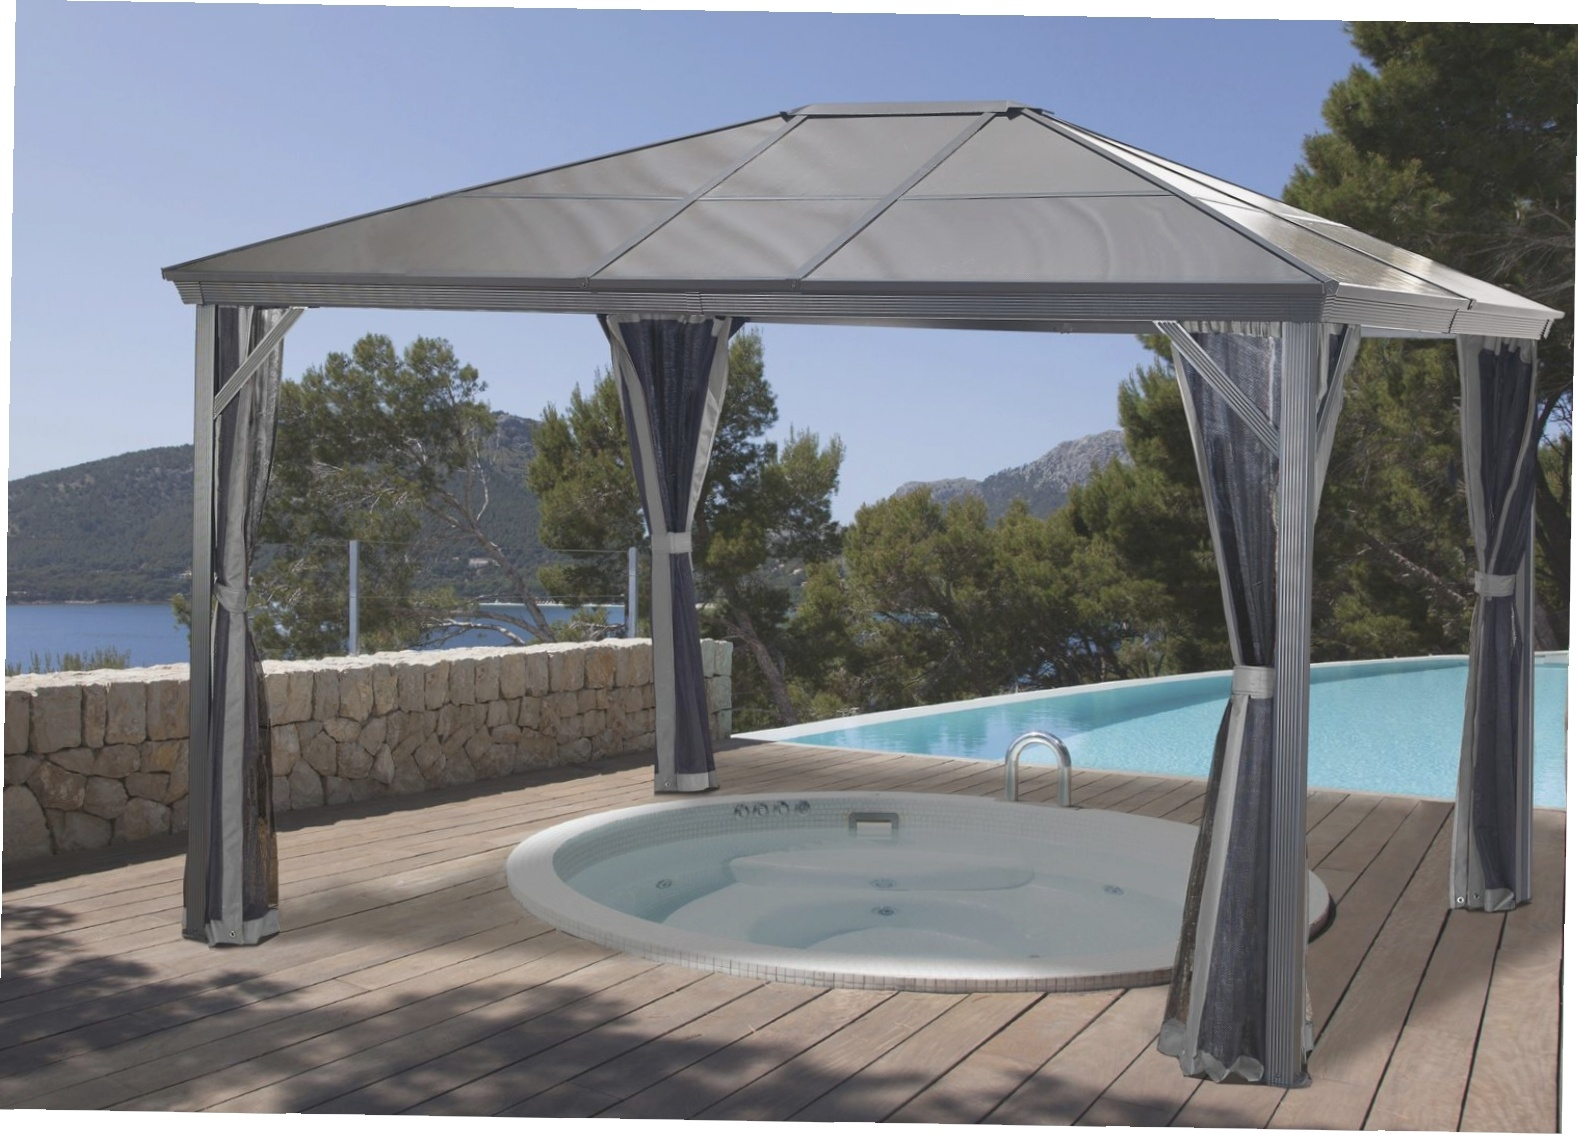 Screened Gazebo | 12x12 Screened Gazebo | Gazebo Walmart